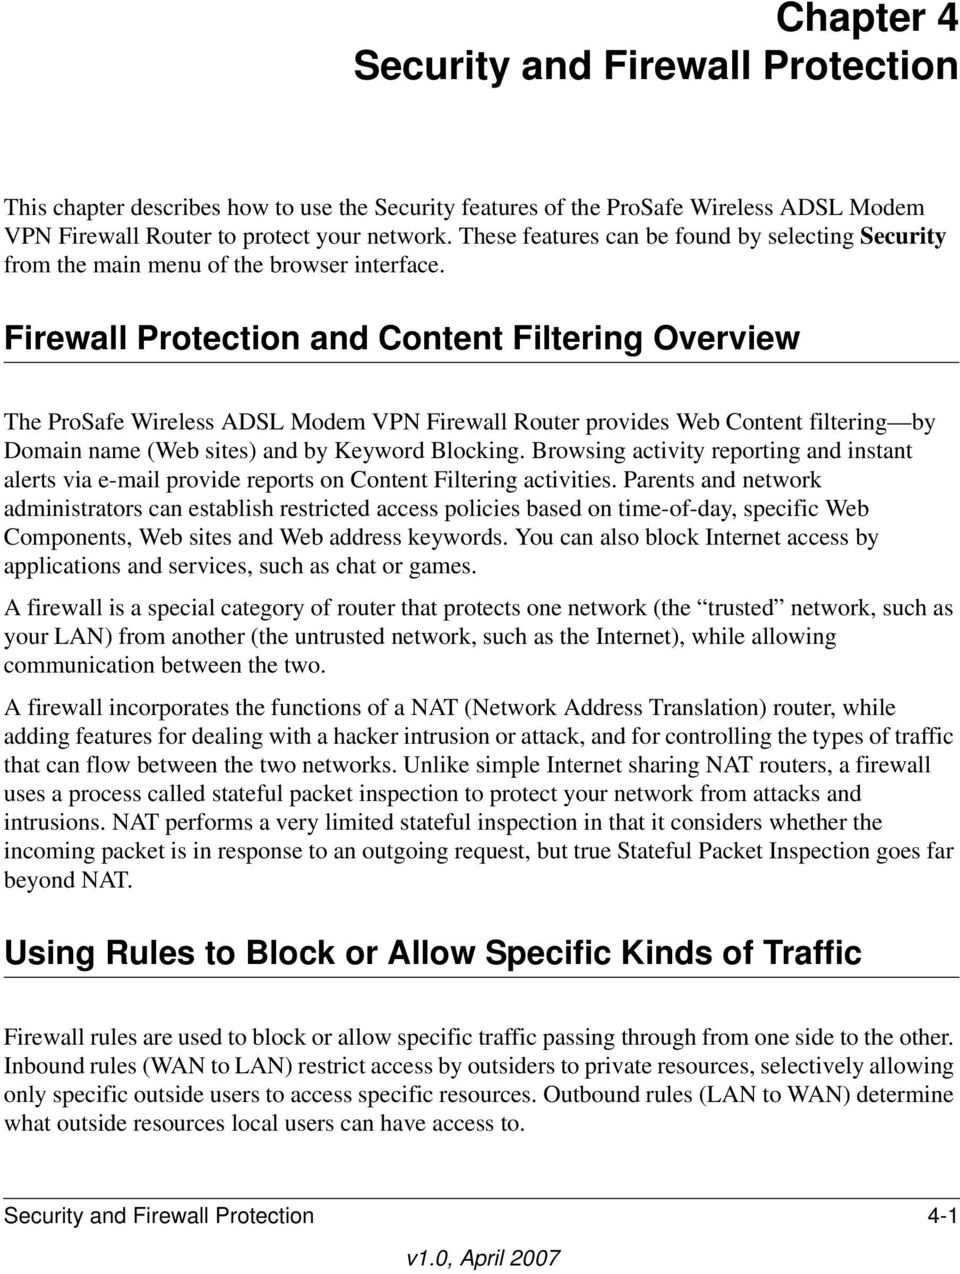 Firewall Protection and Content Filtering Overview The ProSafe Wireless ADSL Modem VPN Firewall Router provides Web Content filtering by Domain name (Web sites) and by Keyword Blocking.